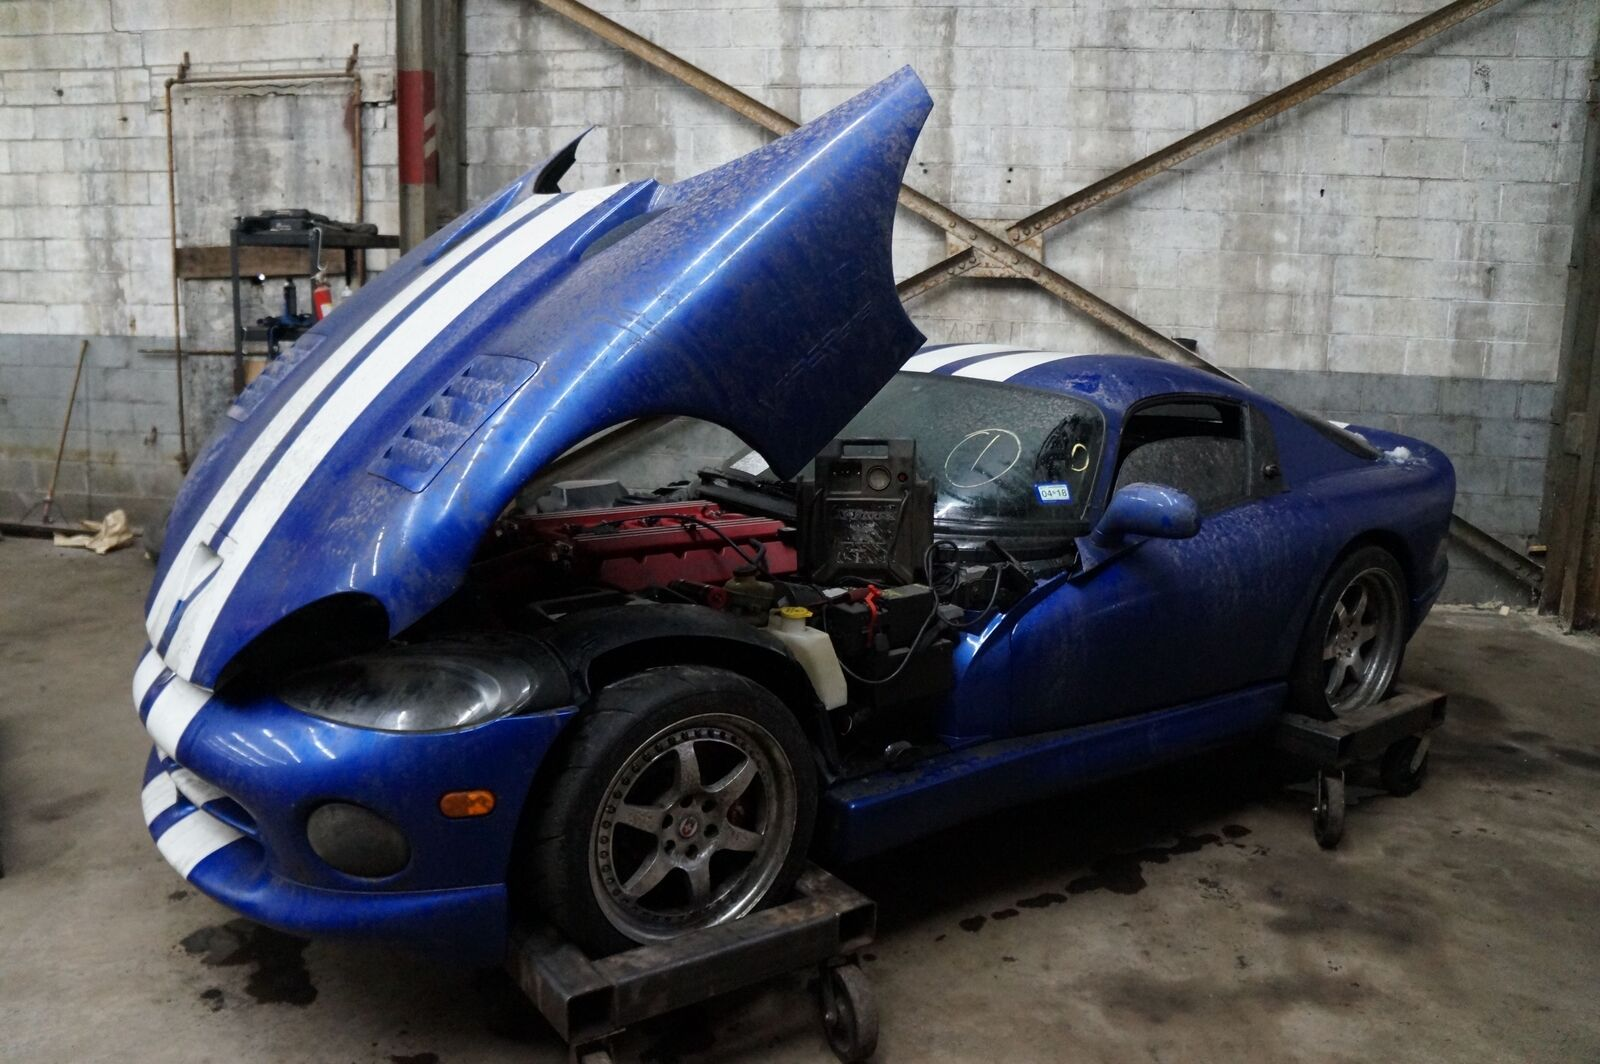 2012 chevrolet camaro owner manual chevy camaro repair manual ebook dodge viper coupe user manuals array left driver side manual door mirror pearl blue pbe 4709433 fandeluxe Image collections